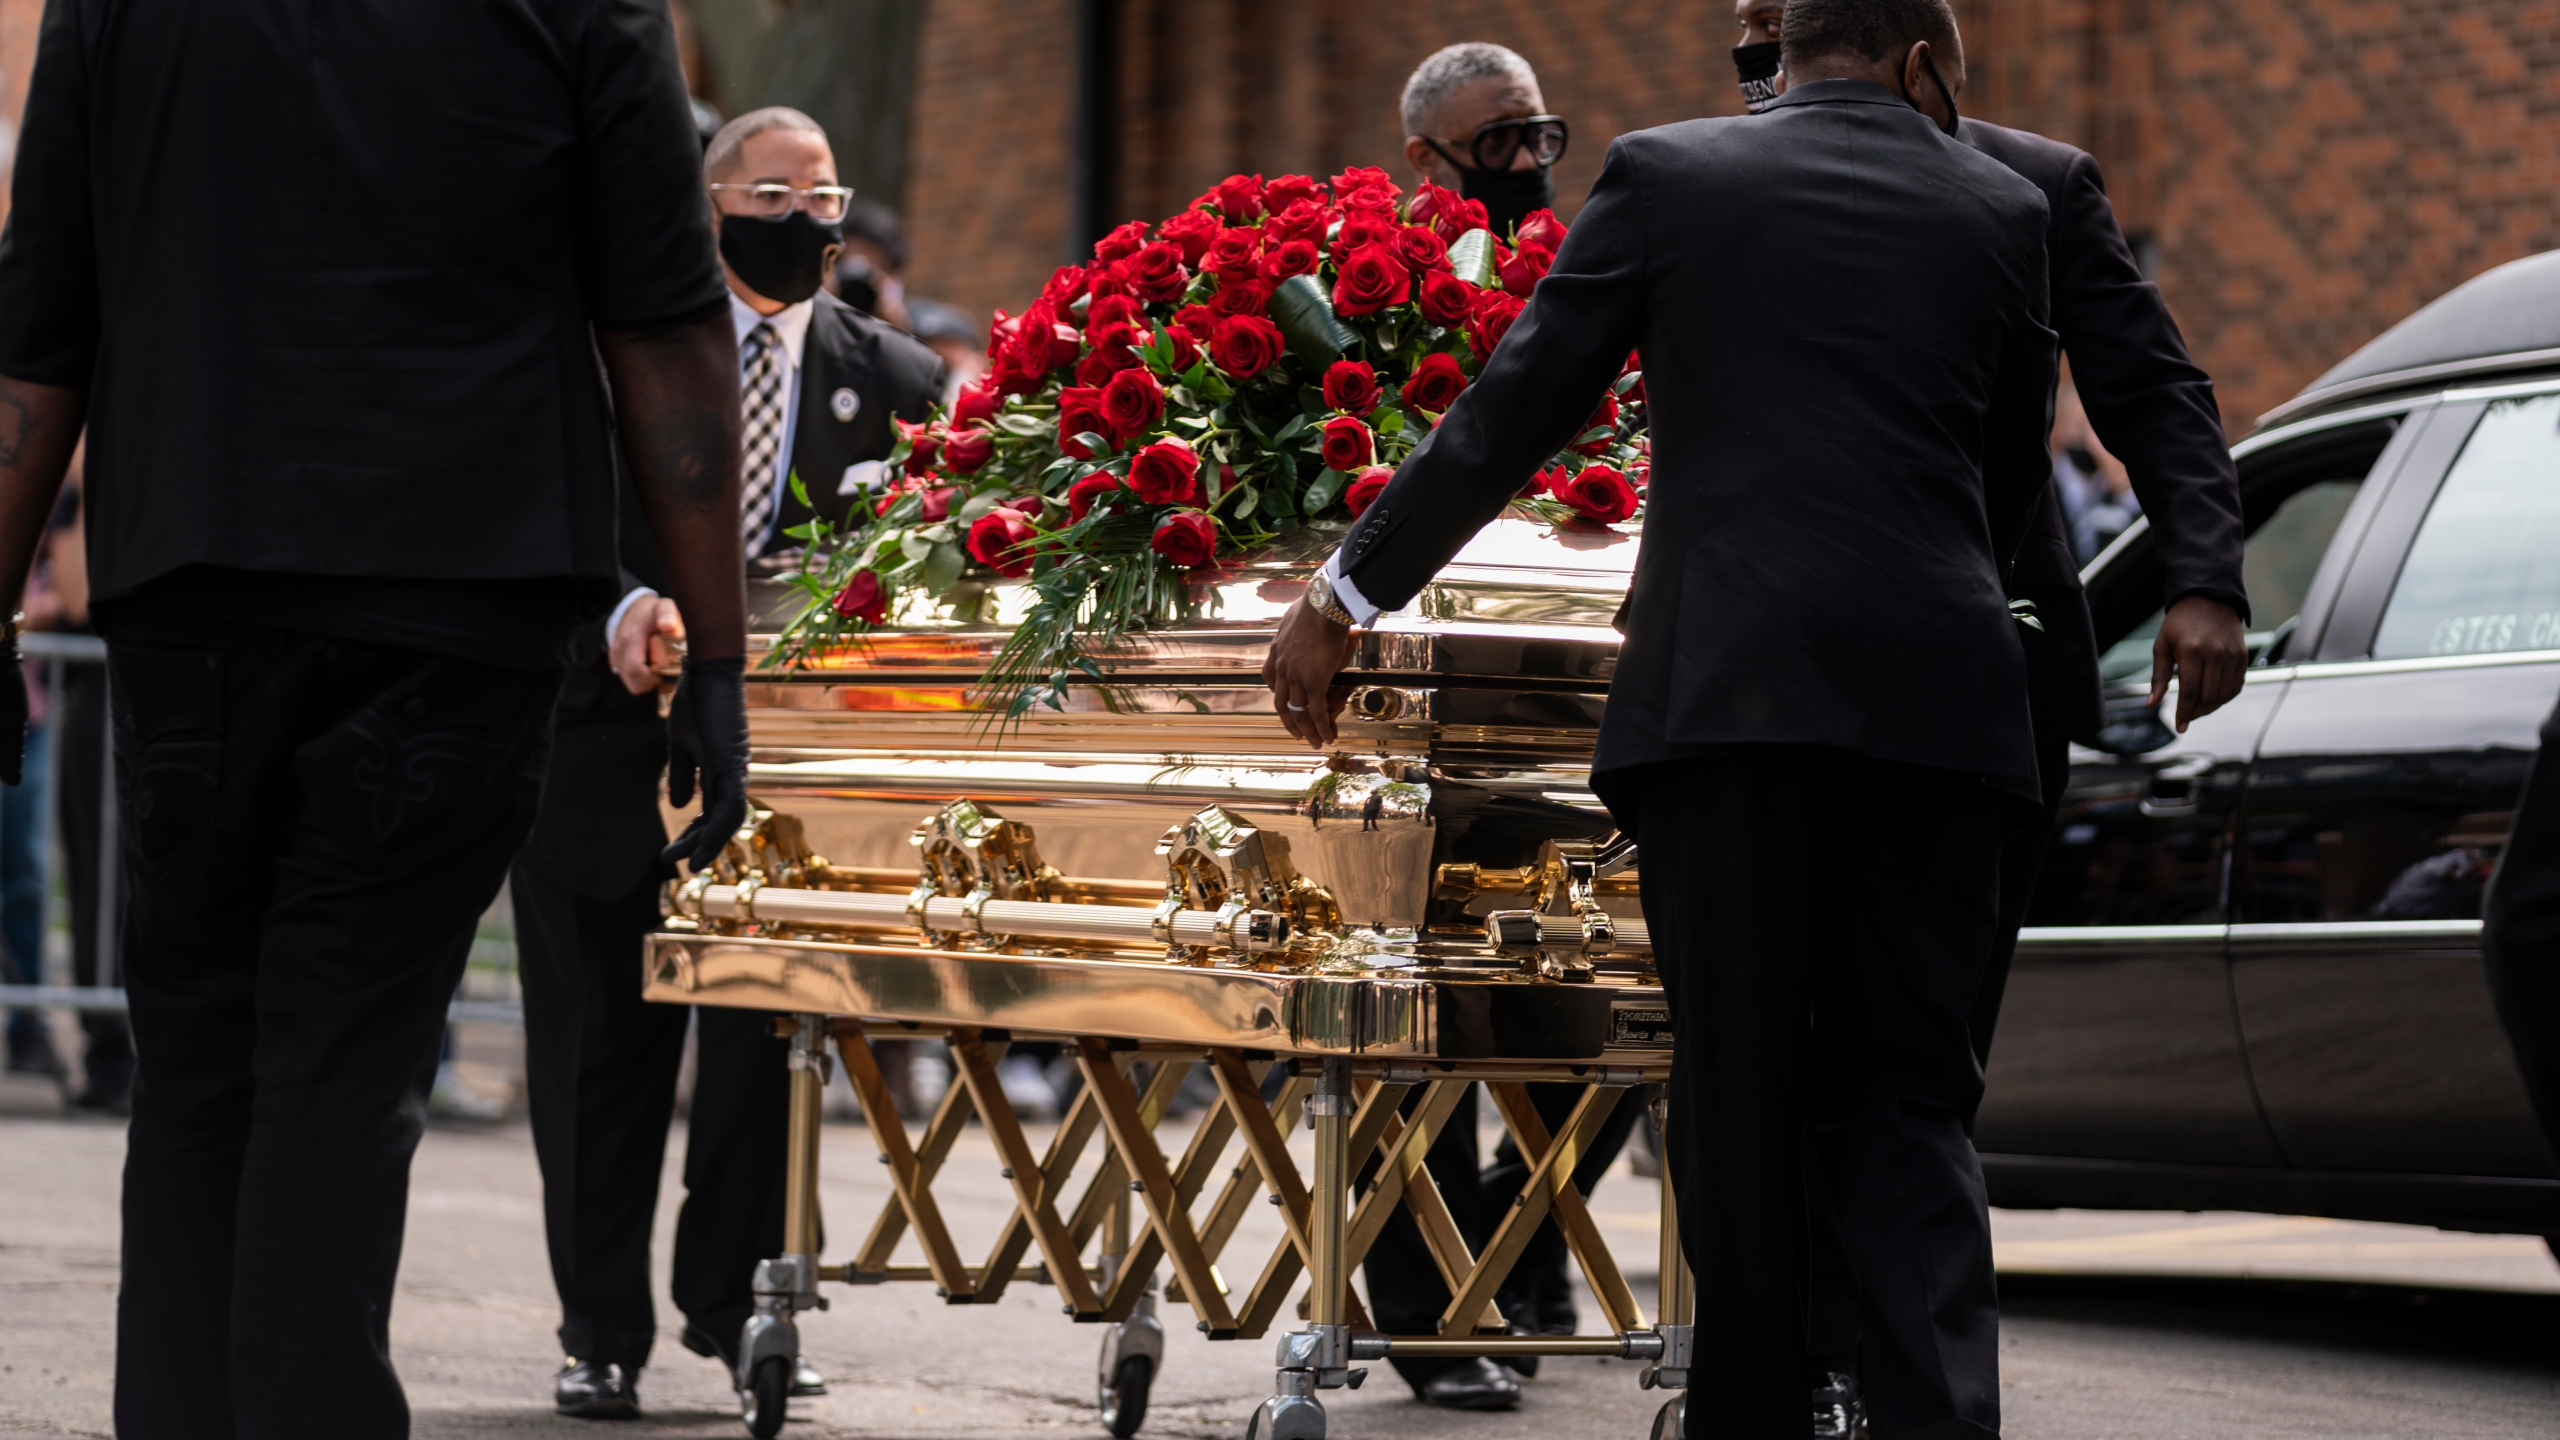 George Floyd's casket is wheeled to a hearse after a memorial service at North Central University on June 4, 2020 in Minneapolis, Minnesota. (Stephen Maturen/Getty Images)